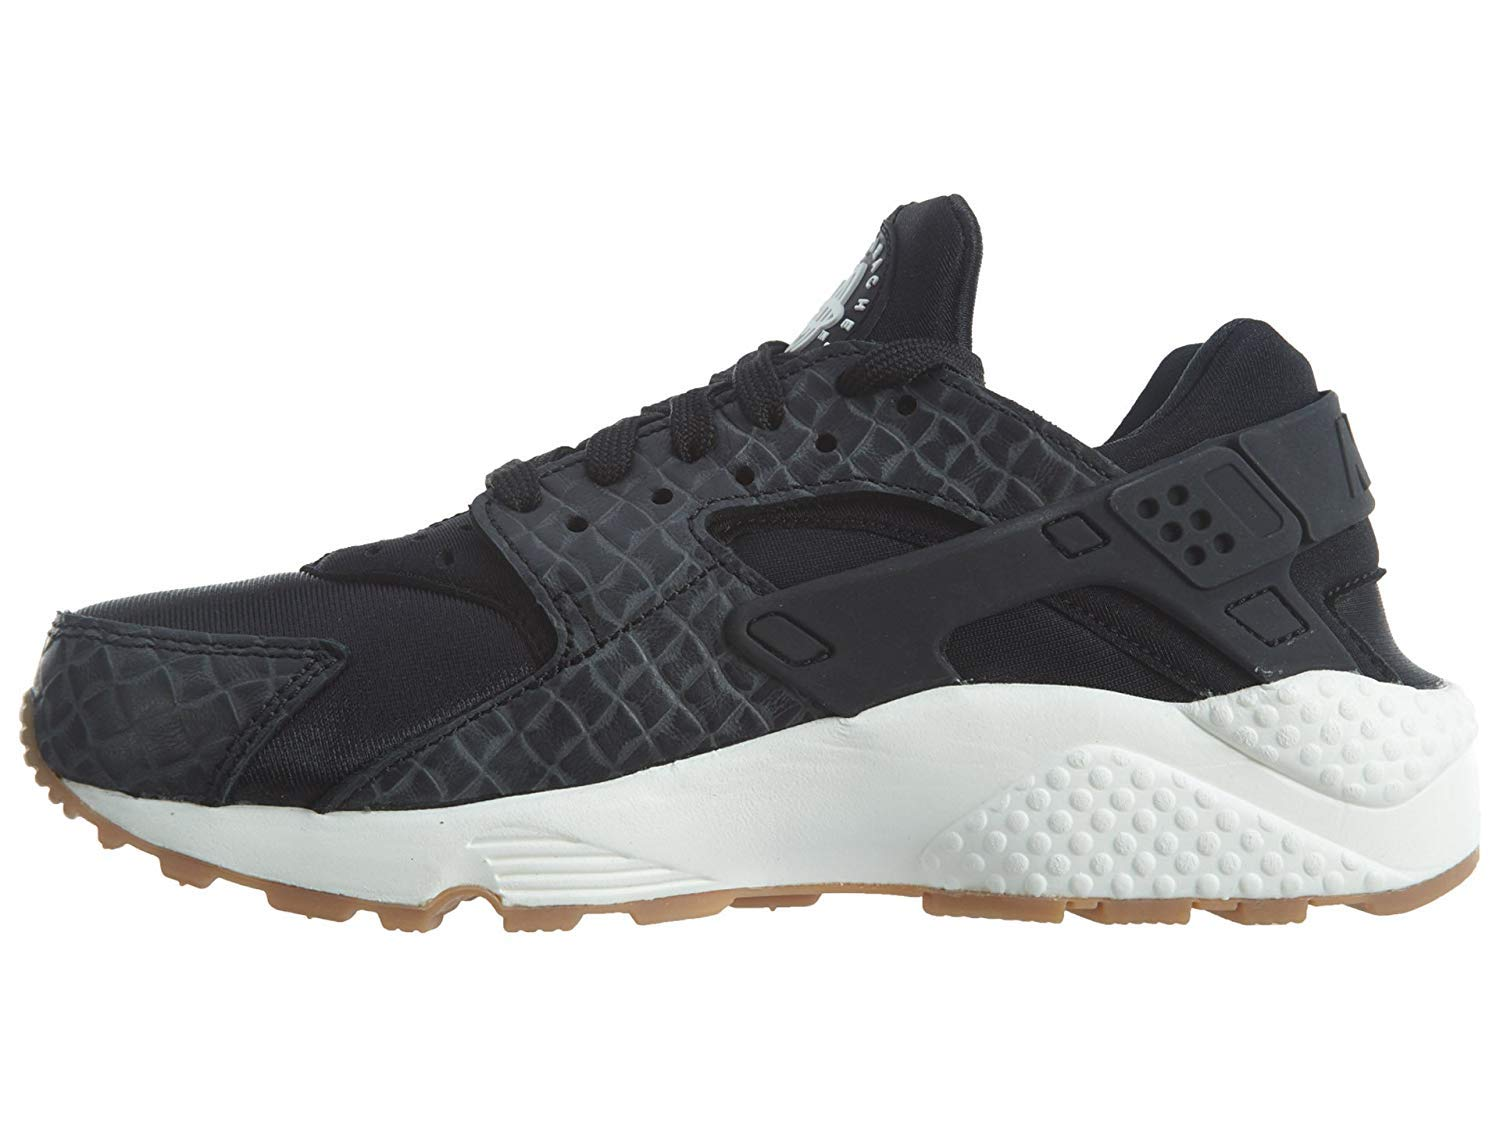 bcd85fb07c5 Amazon.com  Nike Men s Air Huarache Running Shoe  Nike  Shoes